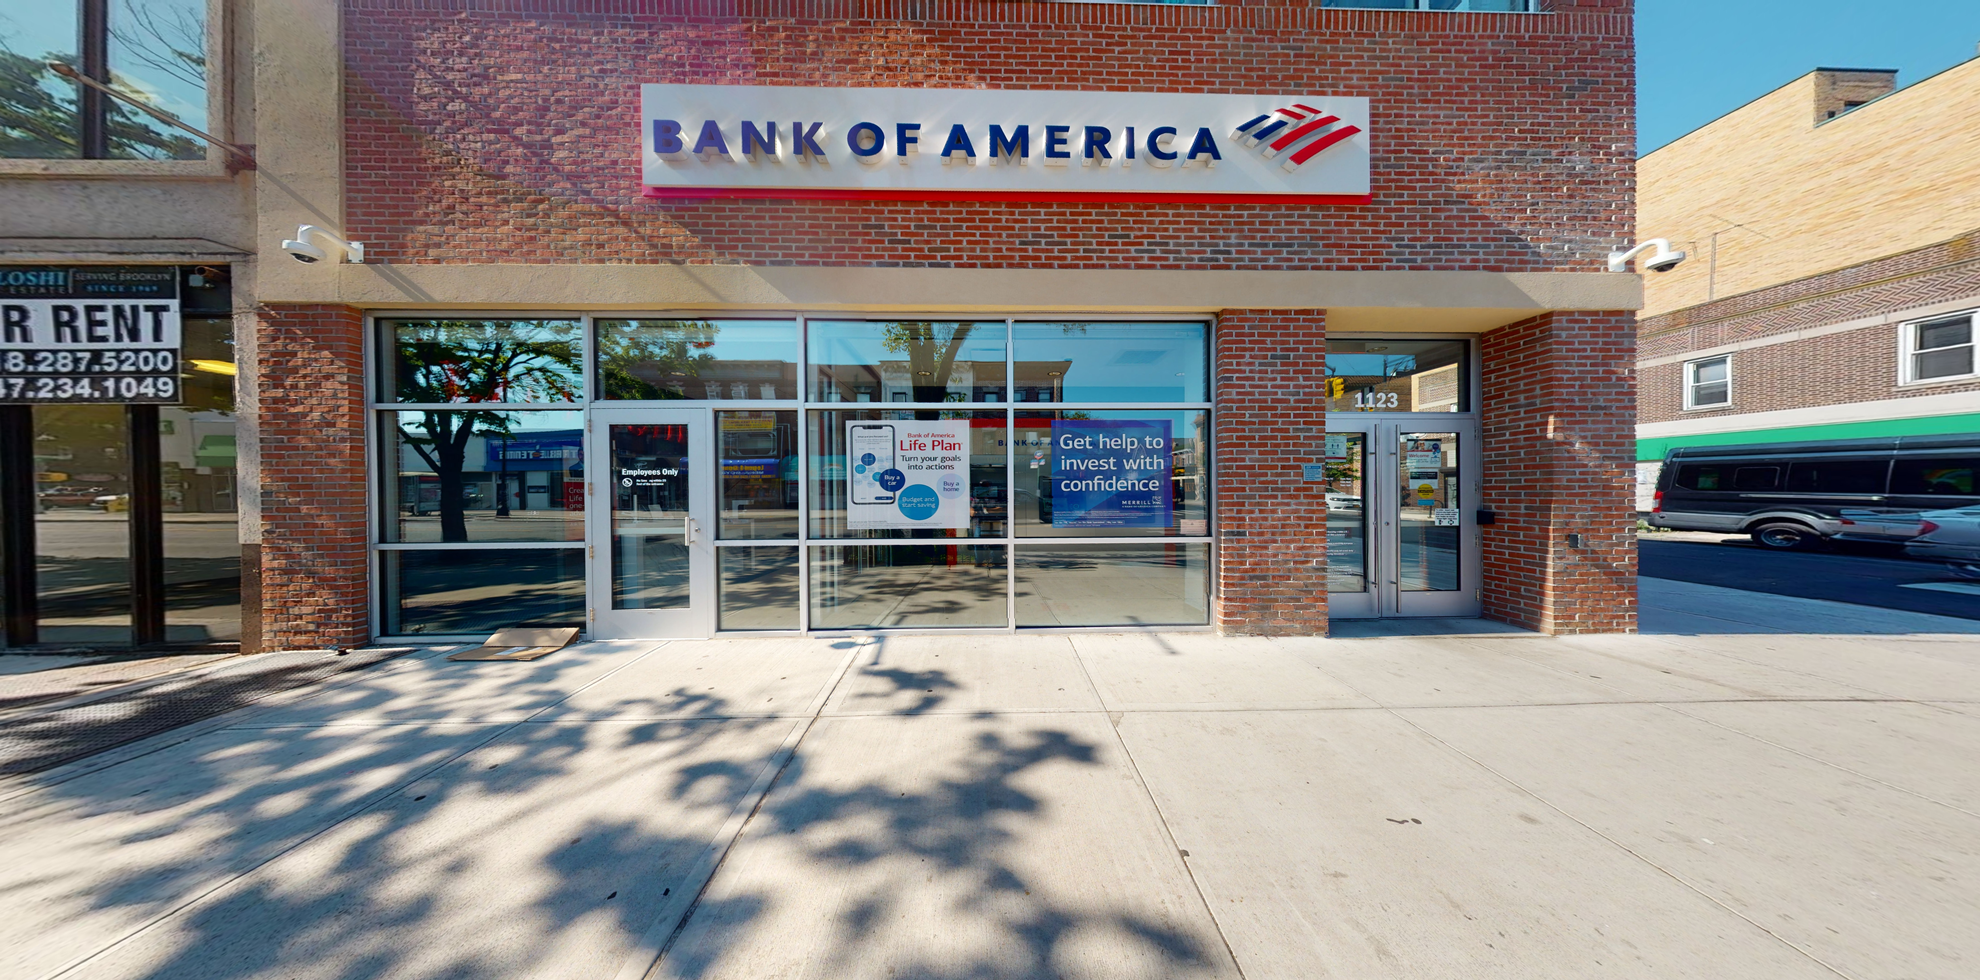 Bank of America financial center with walk-up ATM   1123 Avenue J, Brooklyn, NY 11230